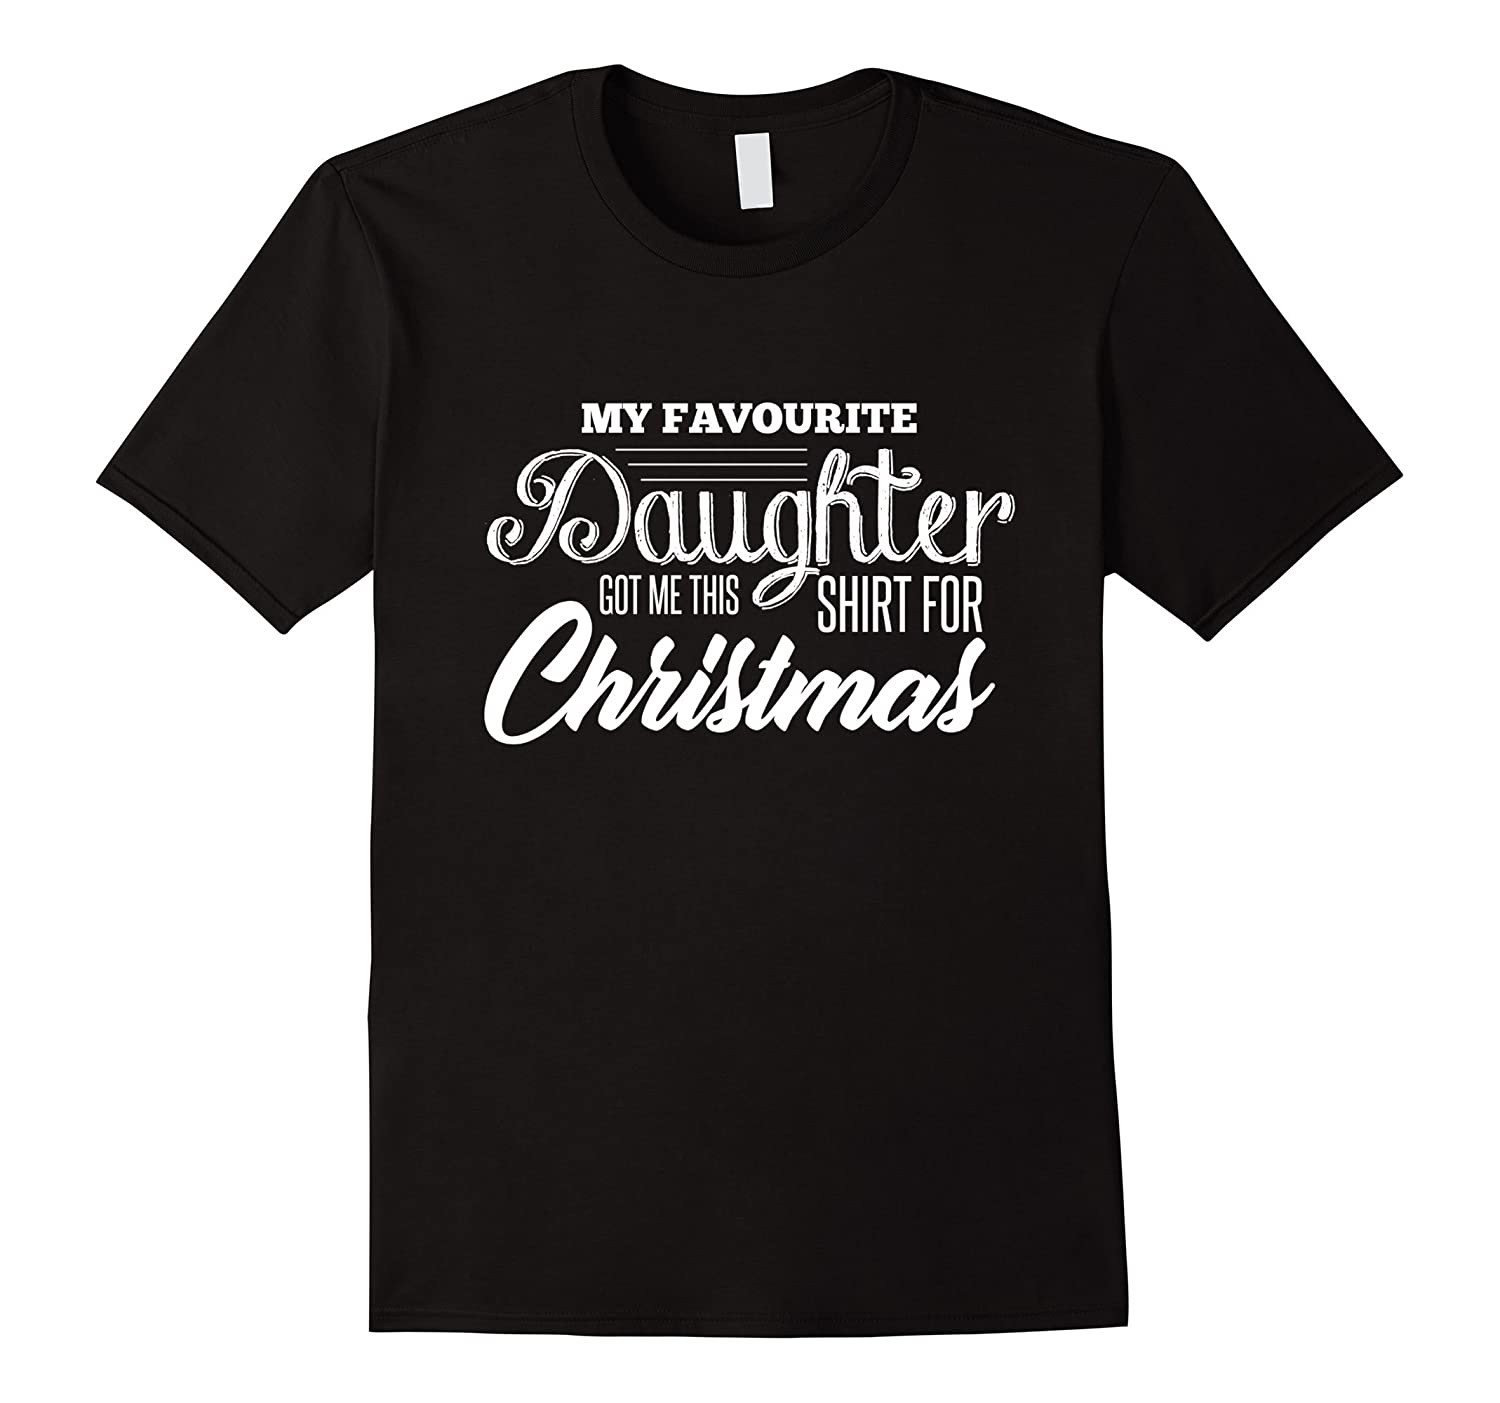 gift for dad from daughter atchristmas-ANZ - Anztshirt